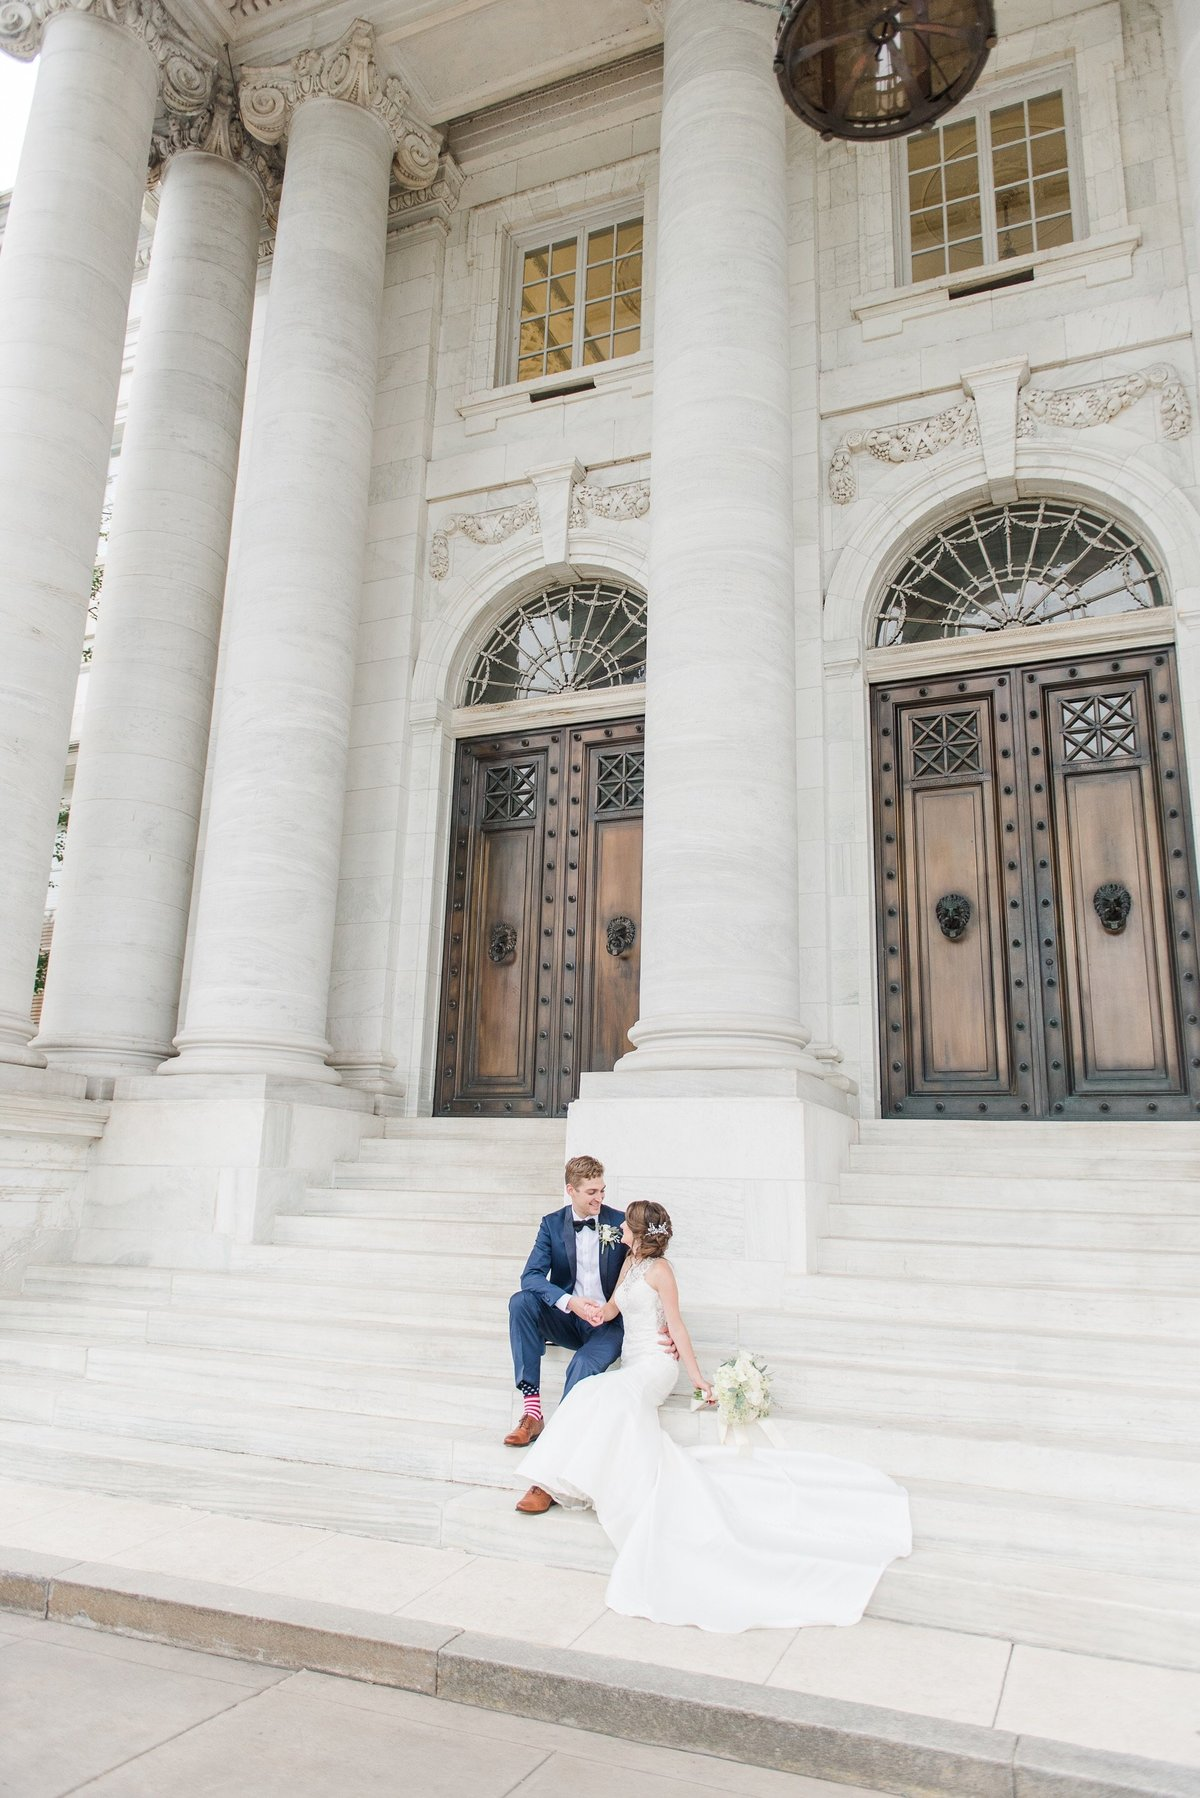 DAR-wedding-photos-washington-dc-wedding-venue